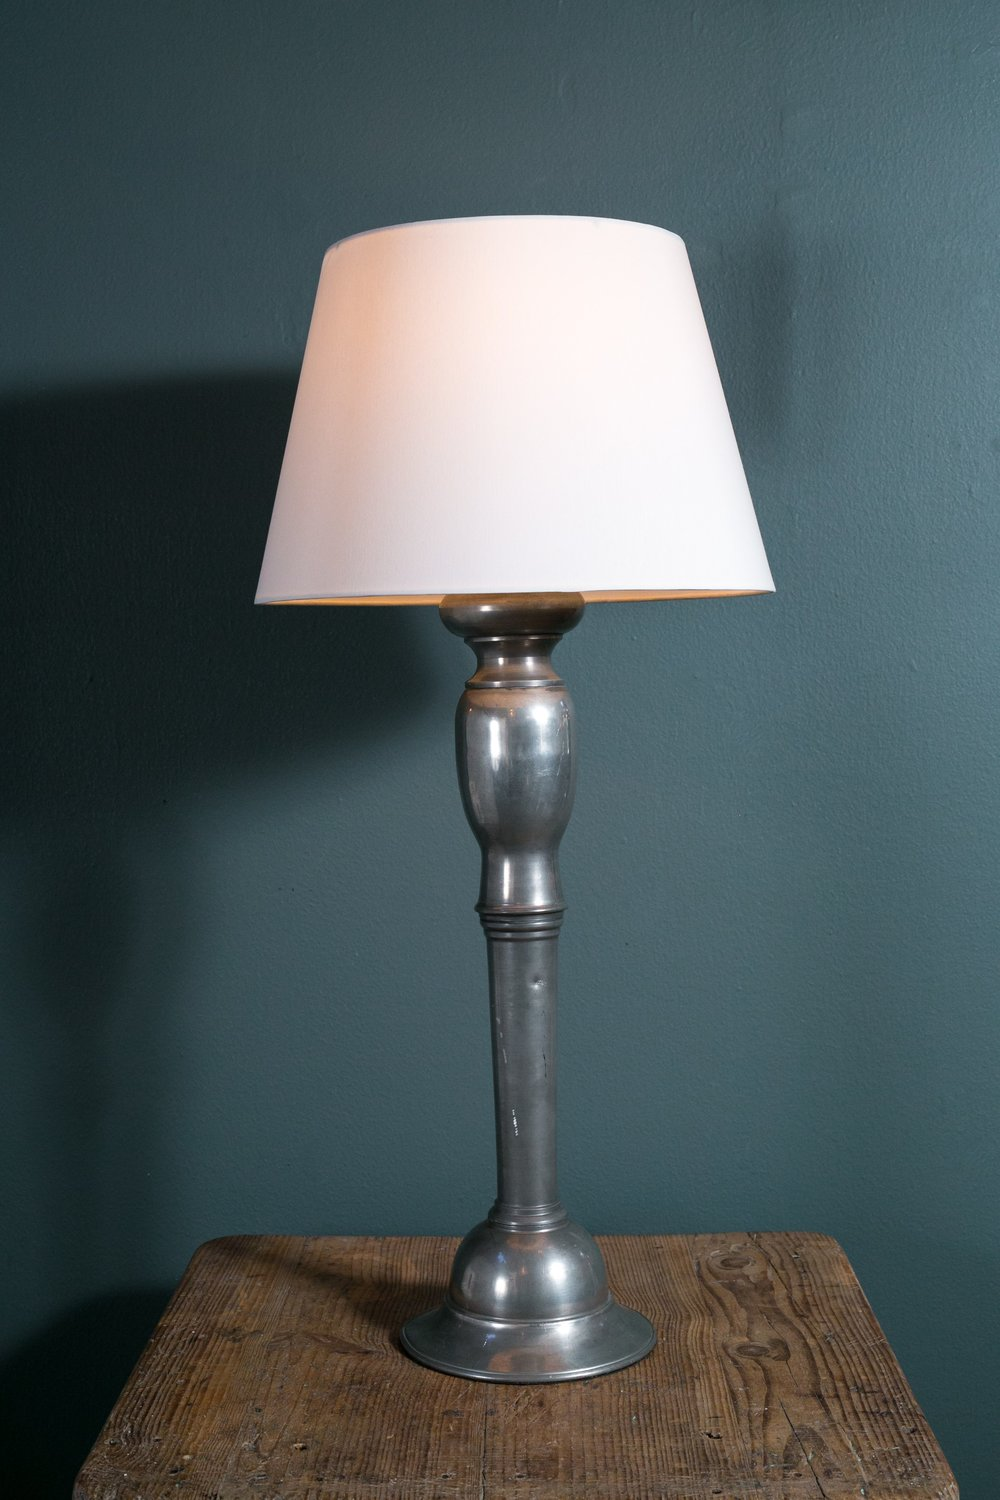 Pewter Table Lamp with Shade